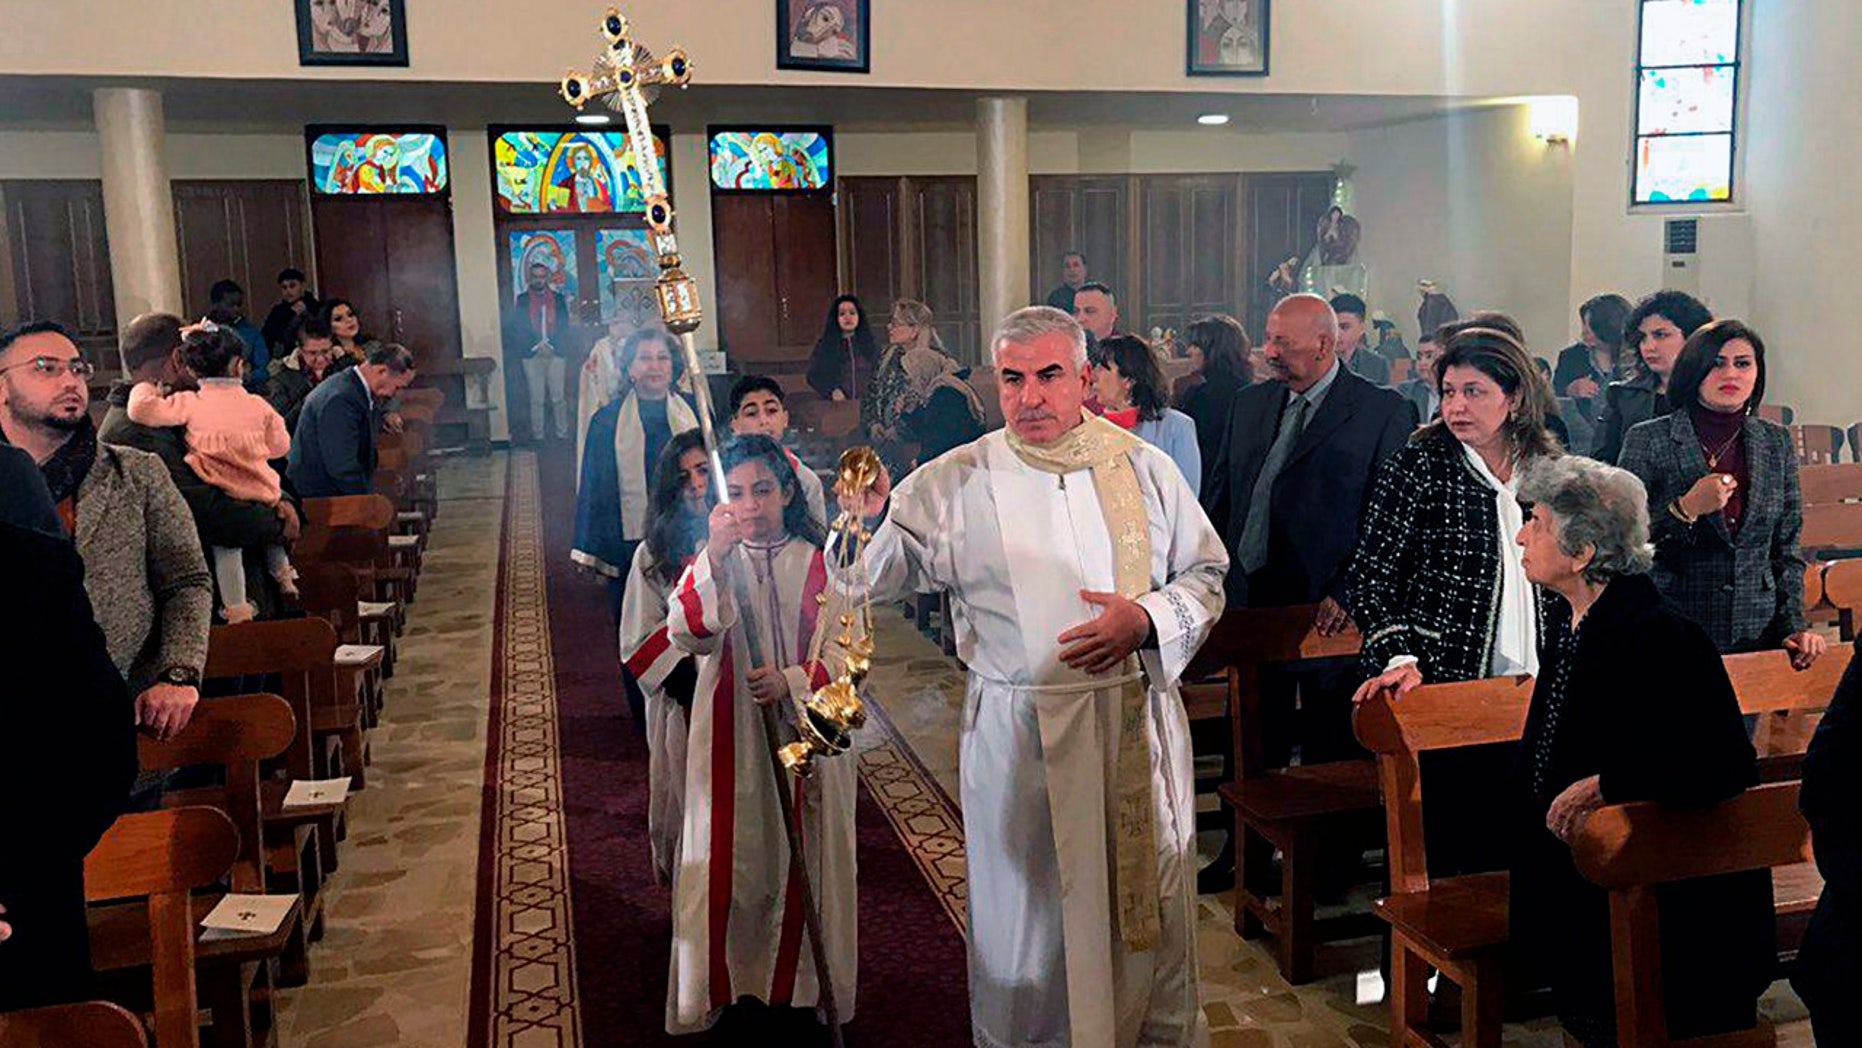 Iraqis attend Christmas Mass at Mar Youssif Chaldean Church, in Baghdad, Iraq, Tuesday, Dec. 25, 2018. Although the number of Christians has dropped in Iraq, Christmas, a national holiday, is very popular in the capital. (AP Photo/Ali Abdul Hassan)